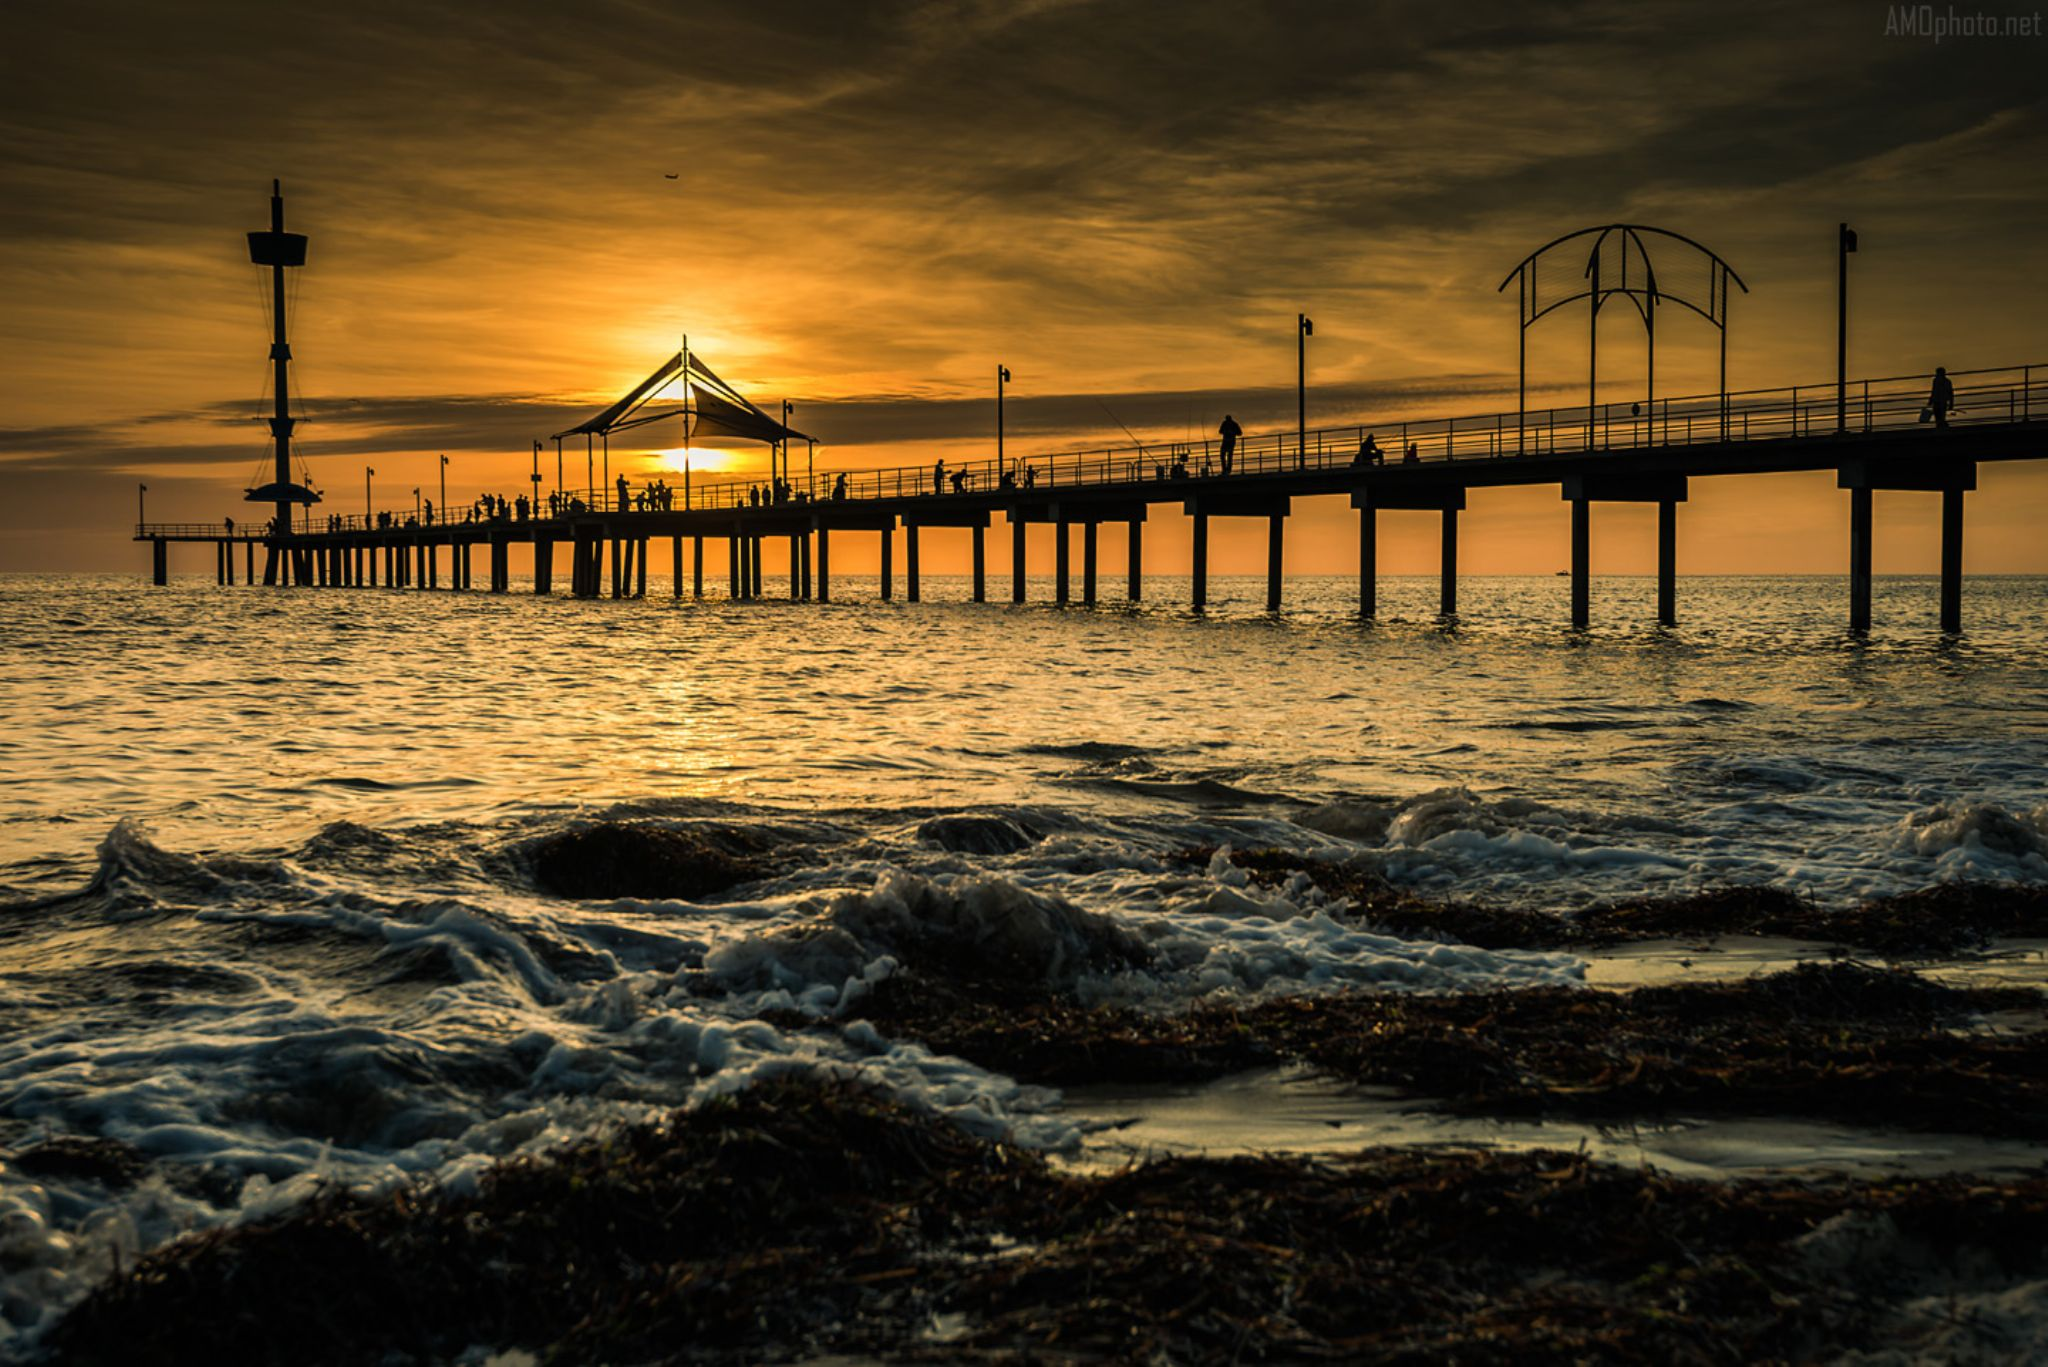 Going home at Brighton Beach Jetty by Andrey Moisseyev Photographer